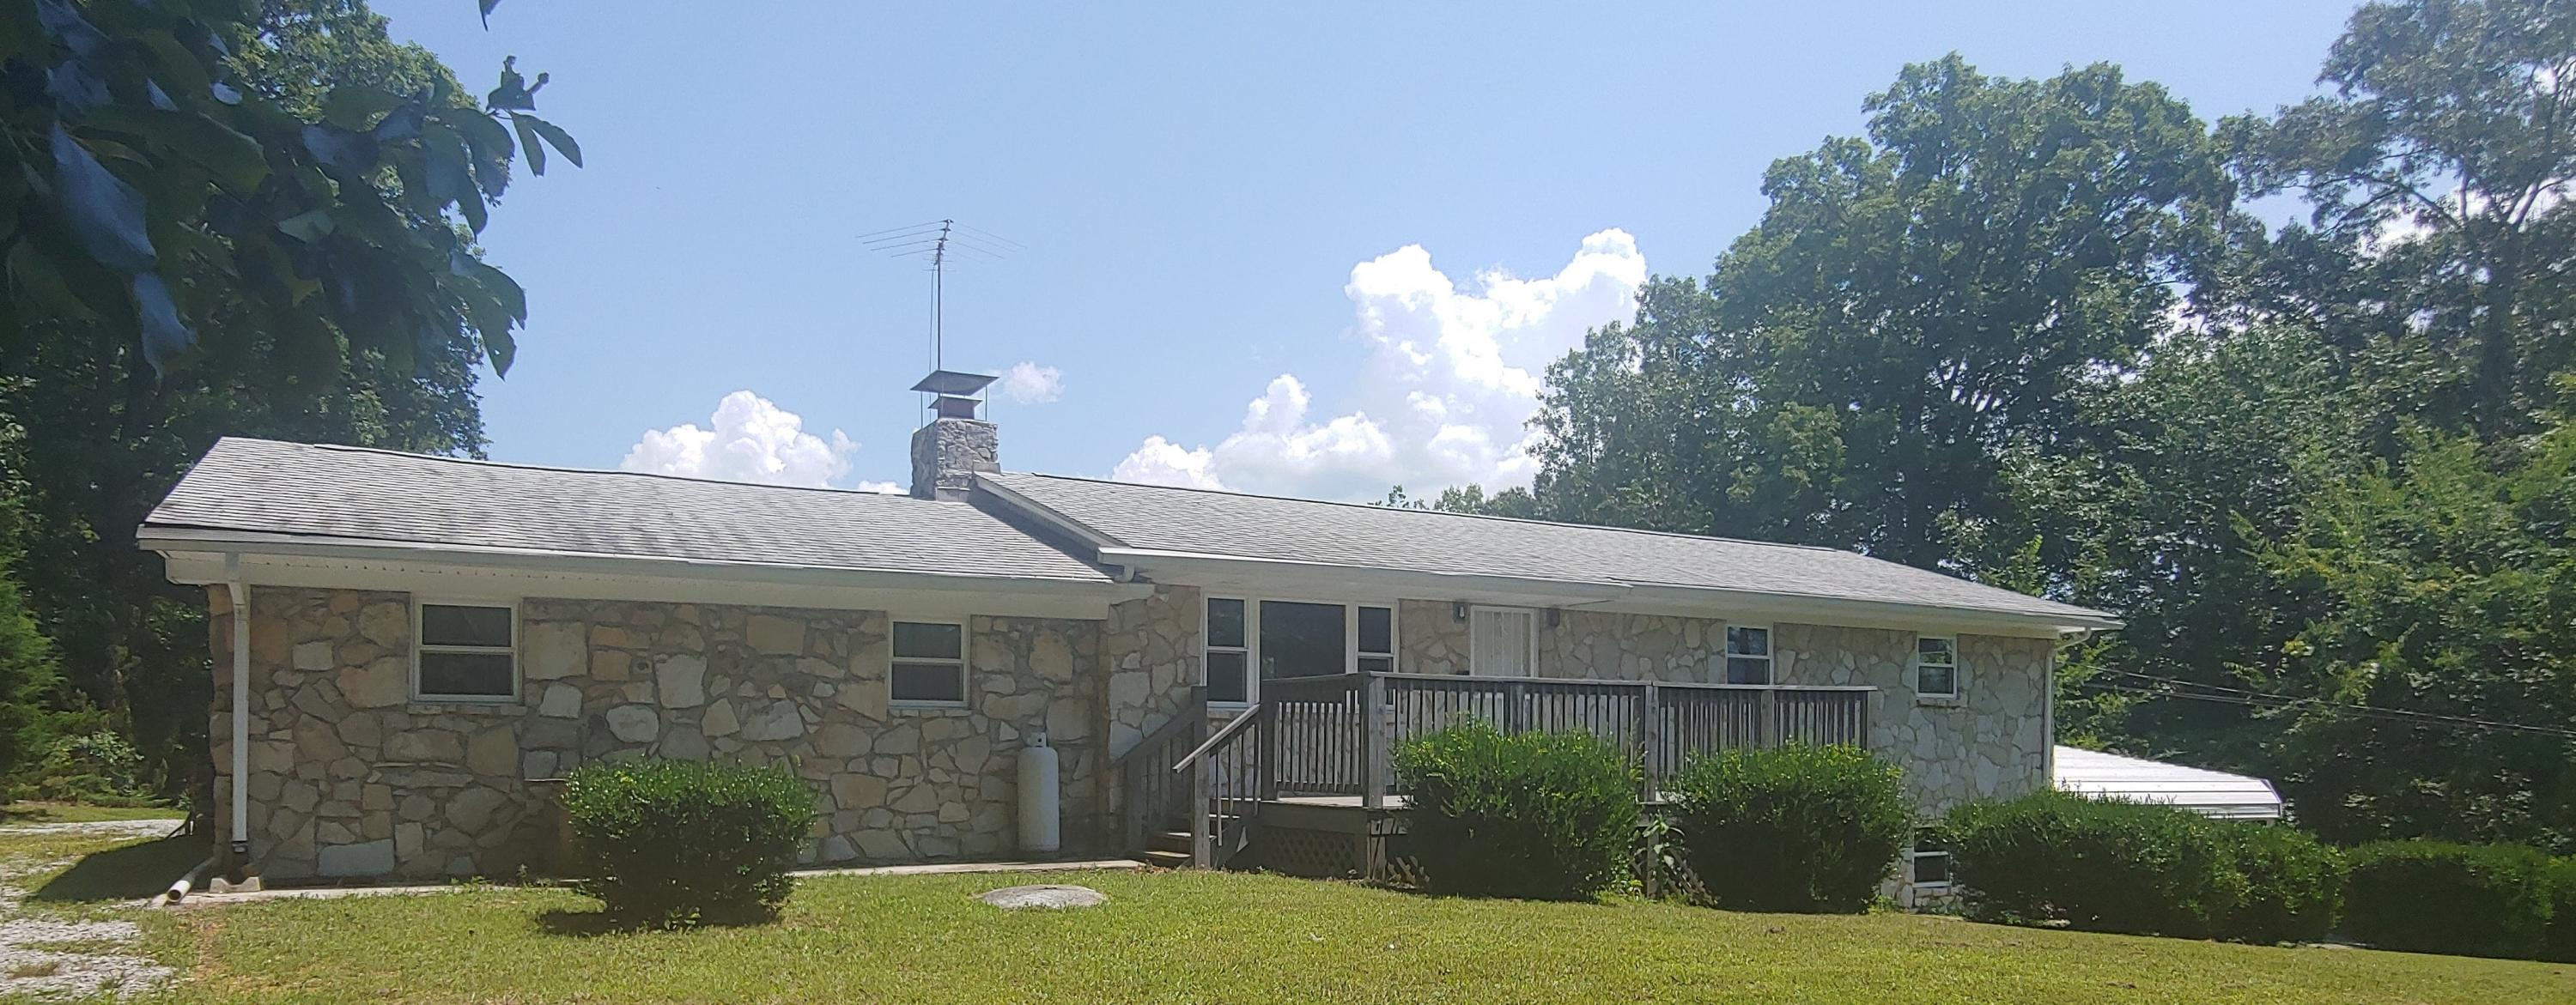 20190801153354417516000000-o Clinton anderson county homes for sale